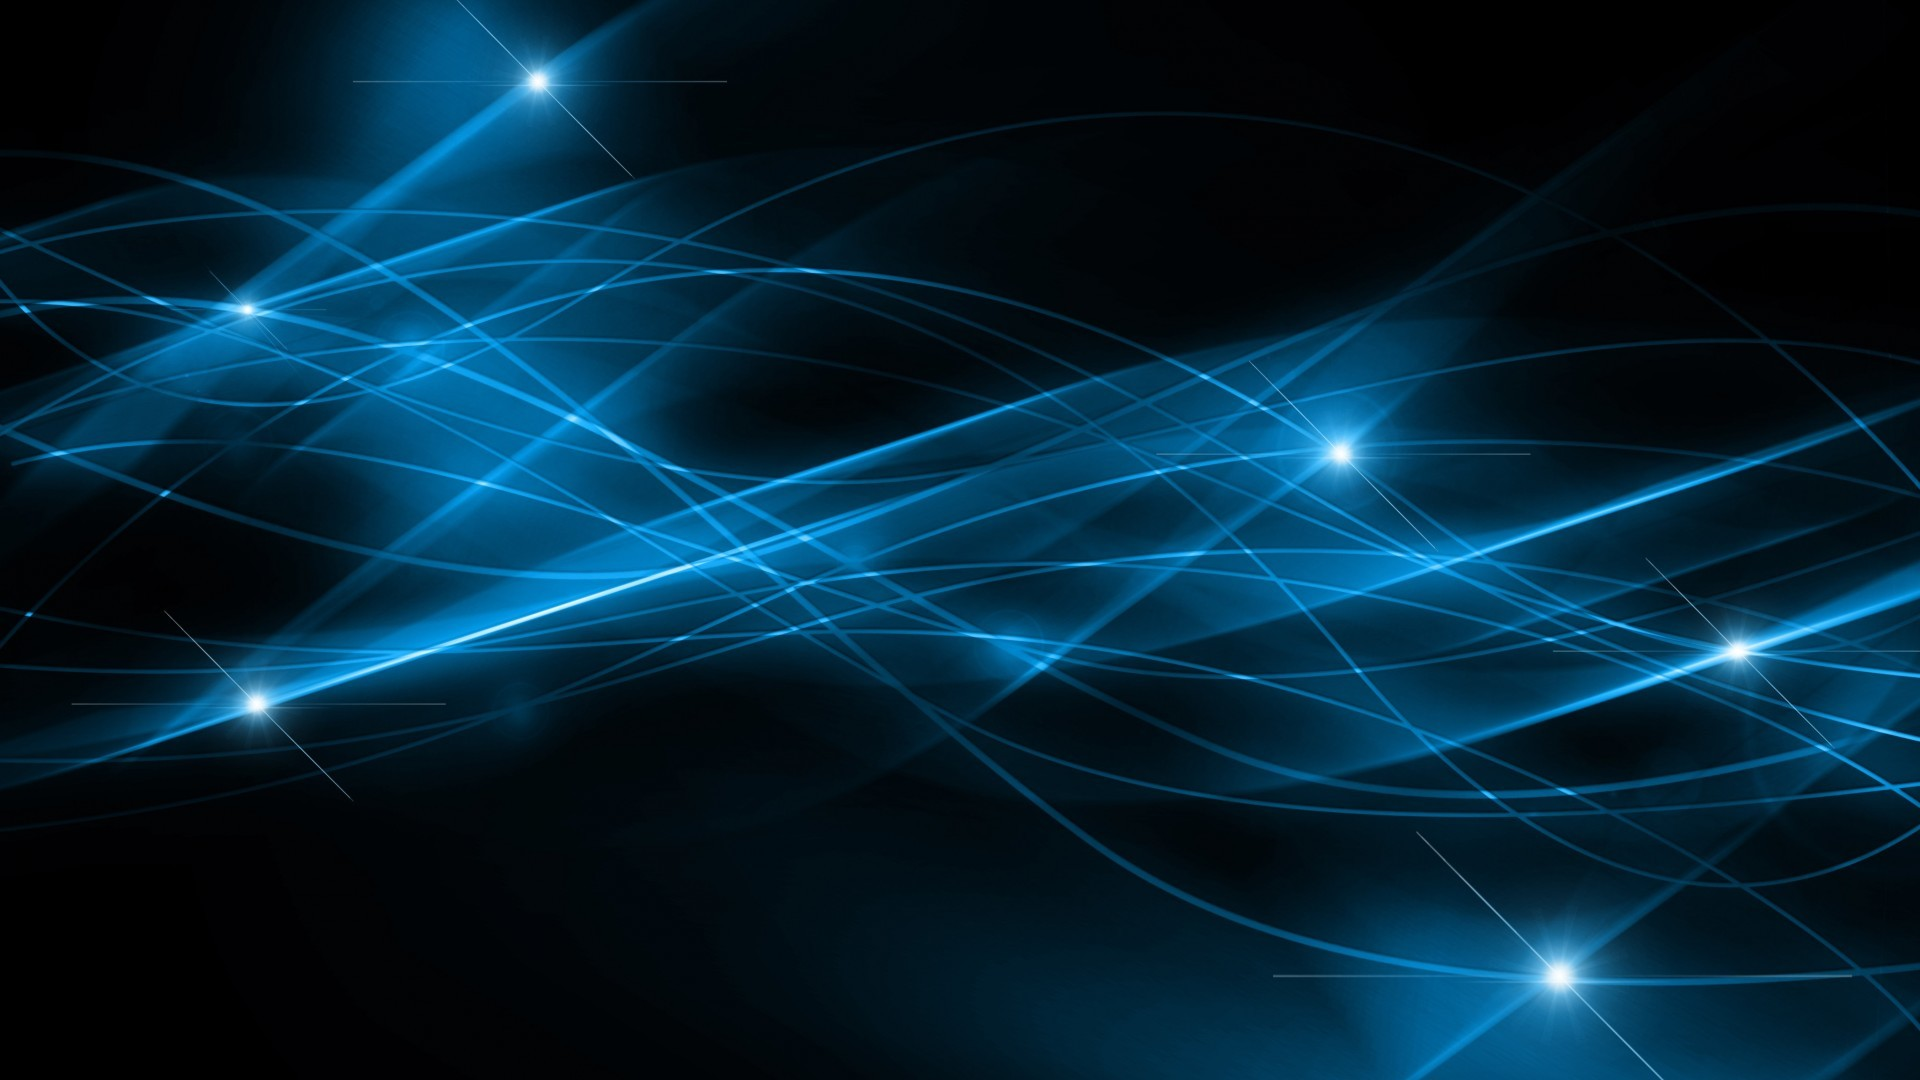 1920x1080 1080 • Black And Blue Abstract Backgrounds Hd 1080P 12 HD Wallpapers .